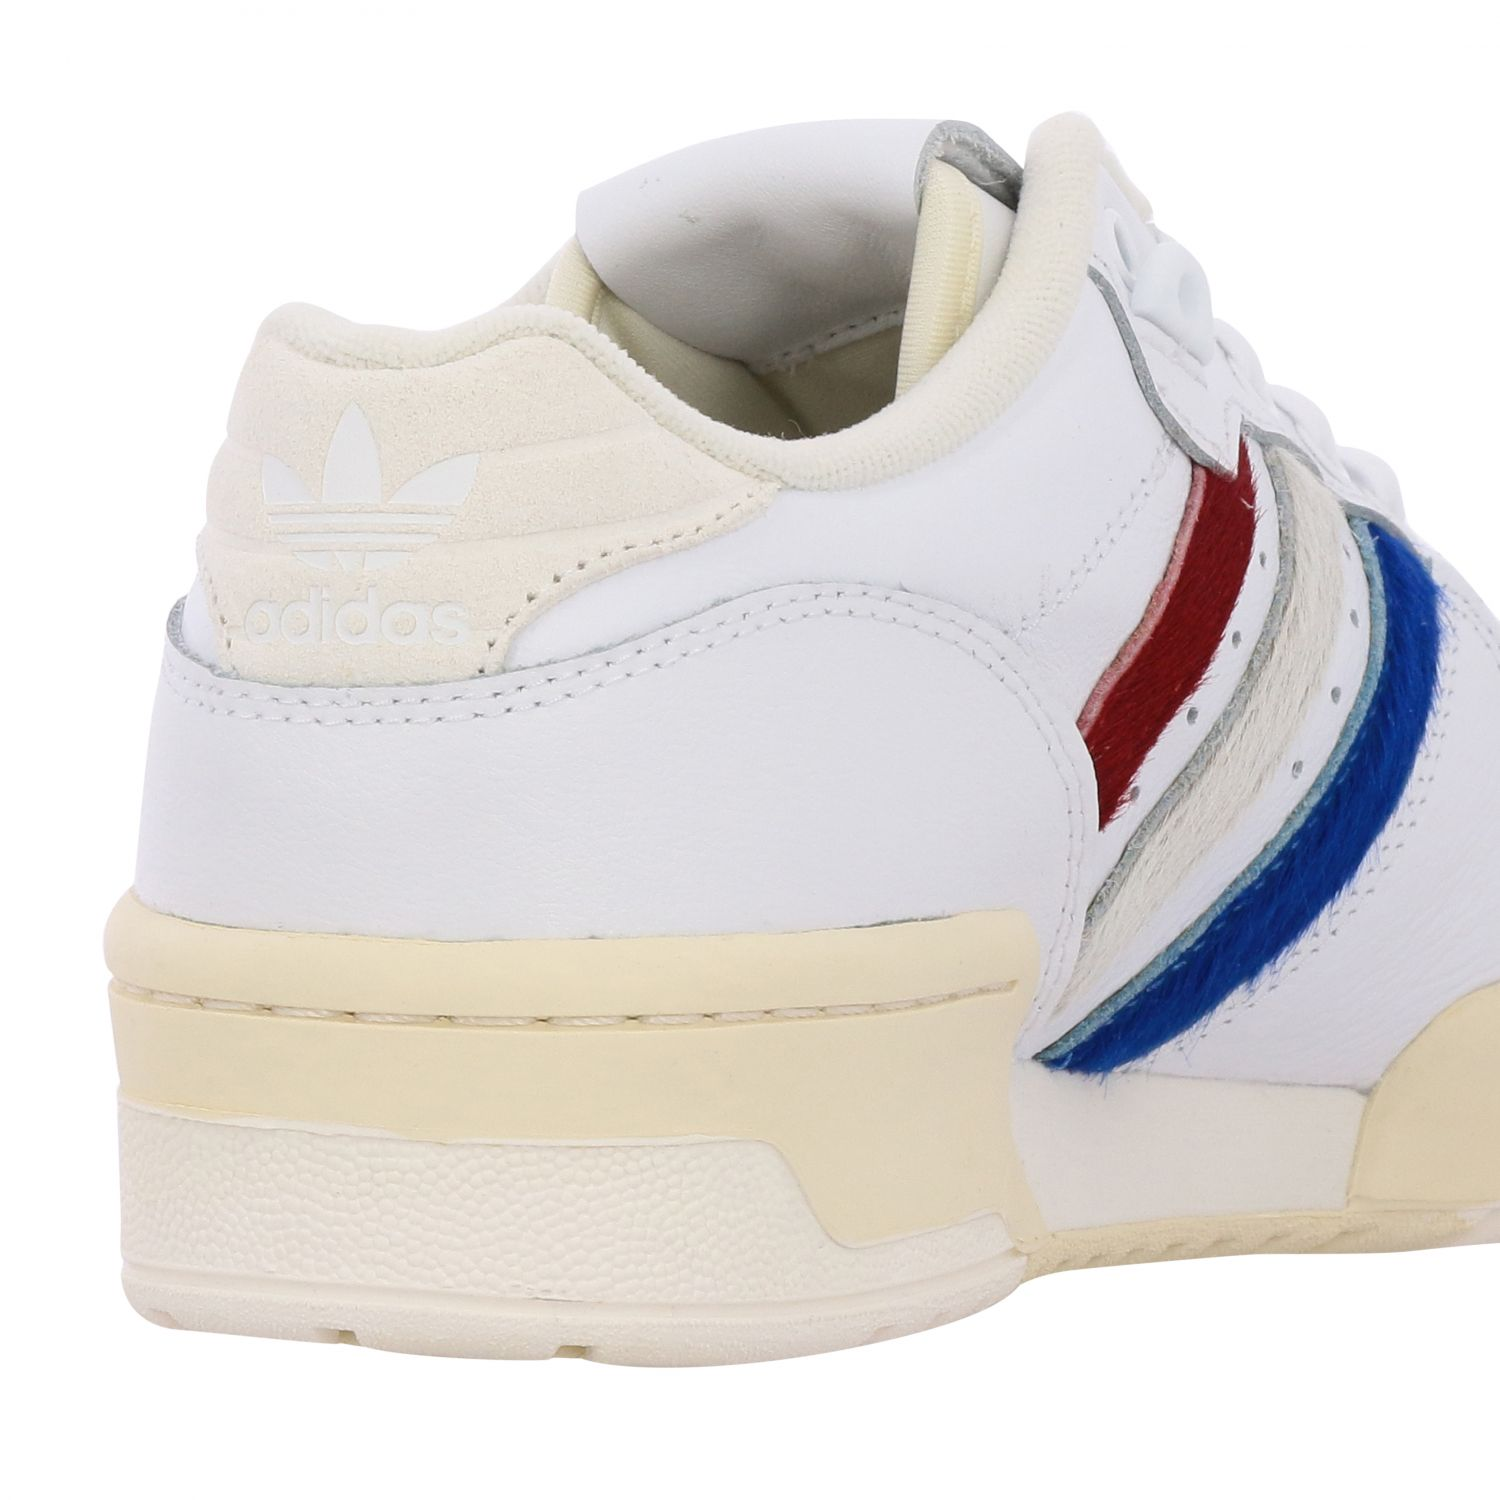 Trainers Adidas Originals: Shoes men Adidas Originals white 5